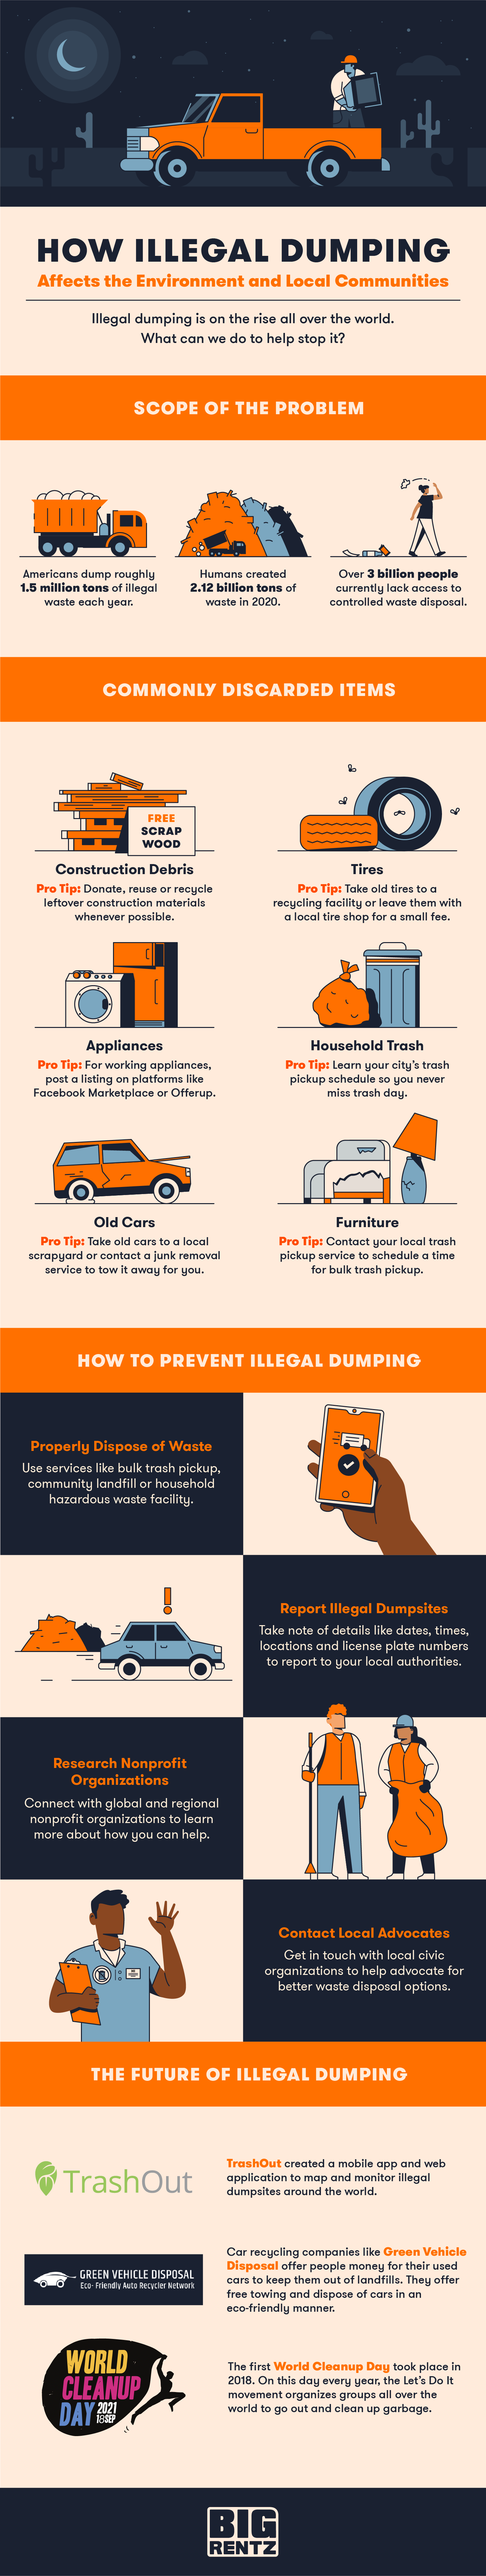 How Illegal Dumping Affects the Environment and Local Communities